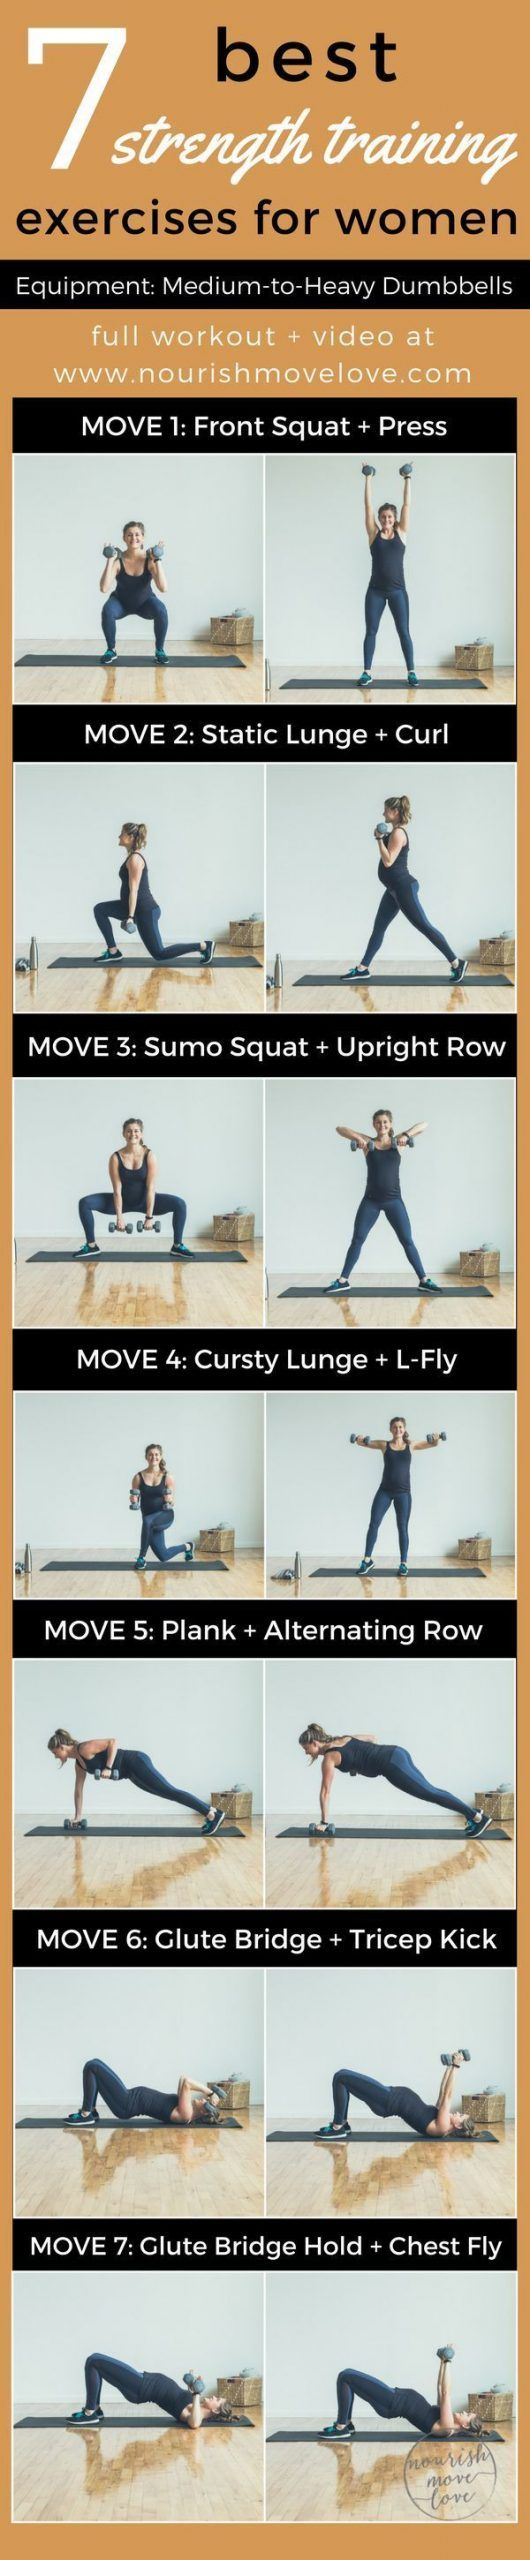 7 Best Strength Training Exercises for Women. An at-home total body workout chal...#athome #body #chal #exercises #strength #total #training #women #workout